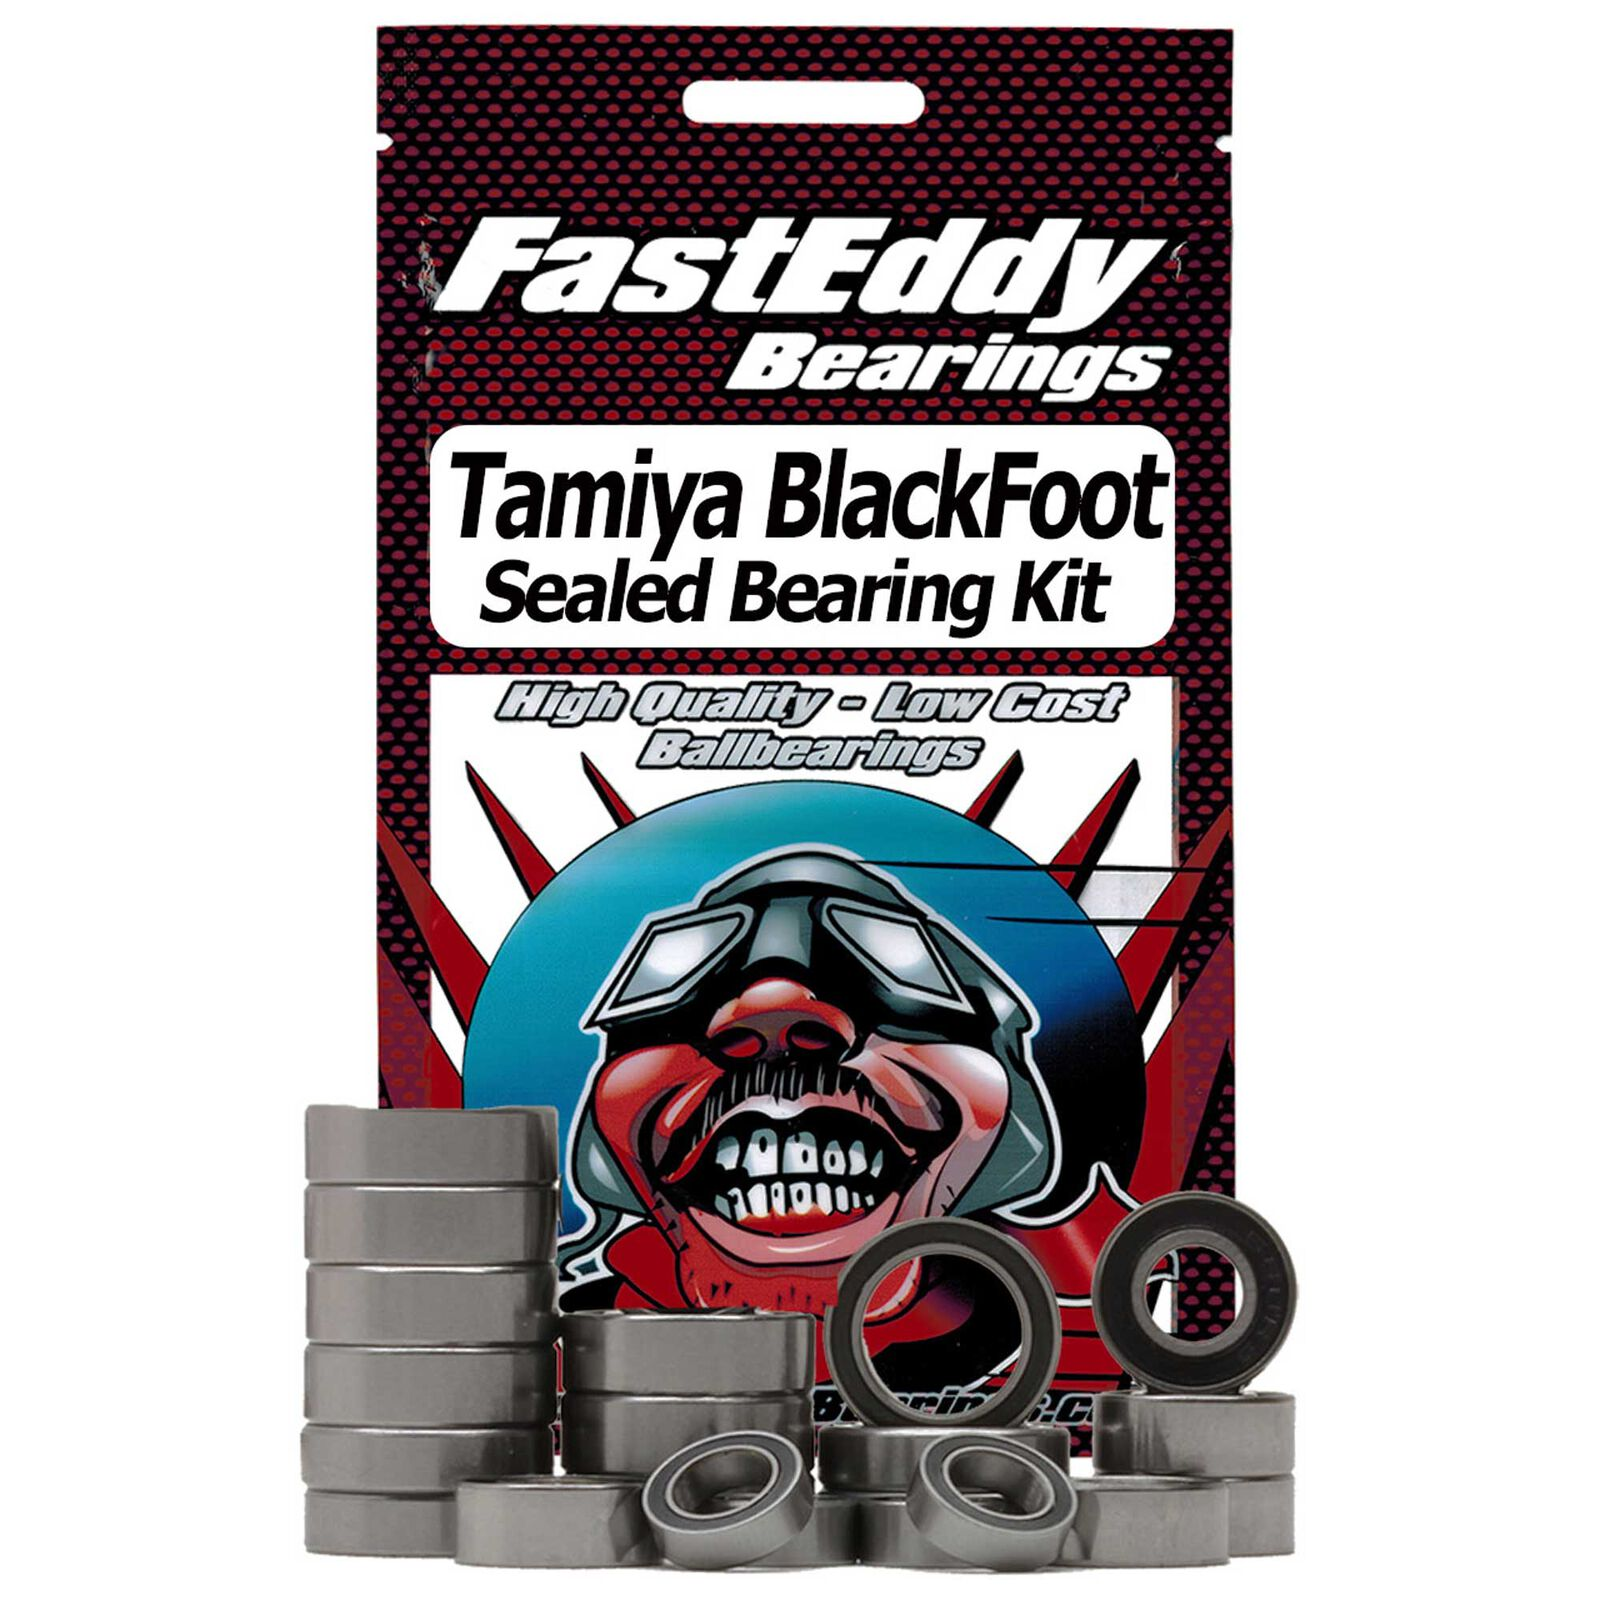 Sealed Bearing Kit: Tamiya BlackFoot (58038)